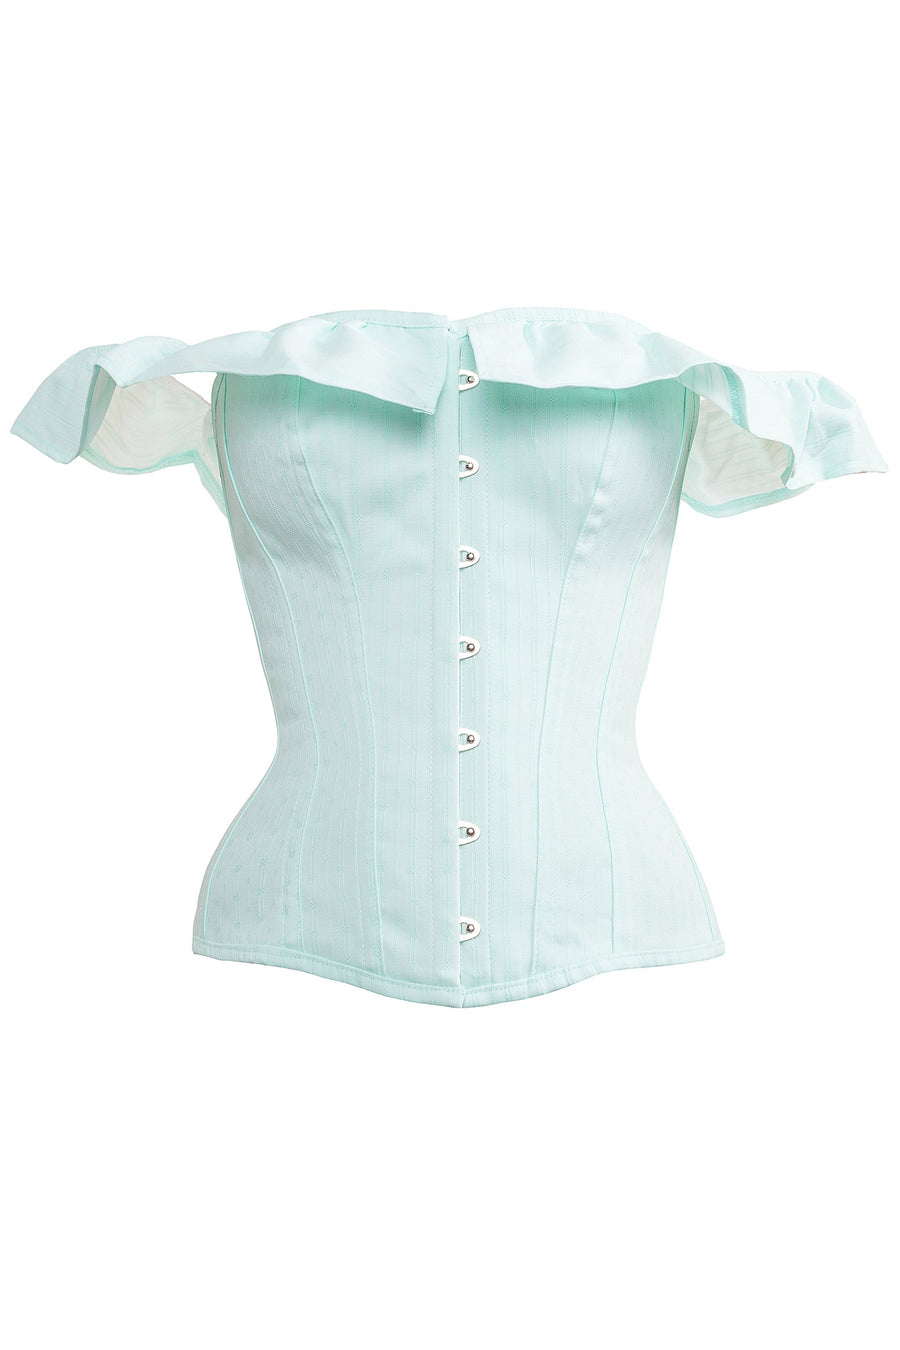 Beautiful Victoriana Mint Corset With Off Shoulder Elasticated Ruffle